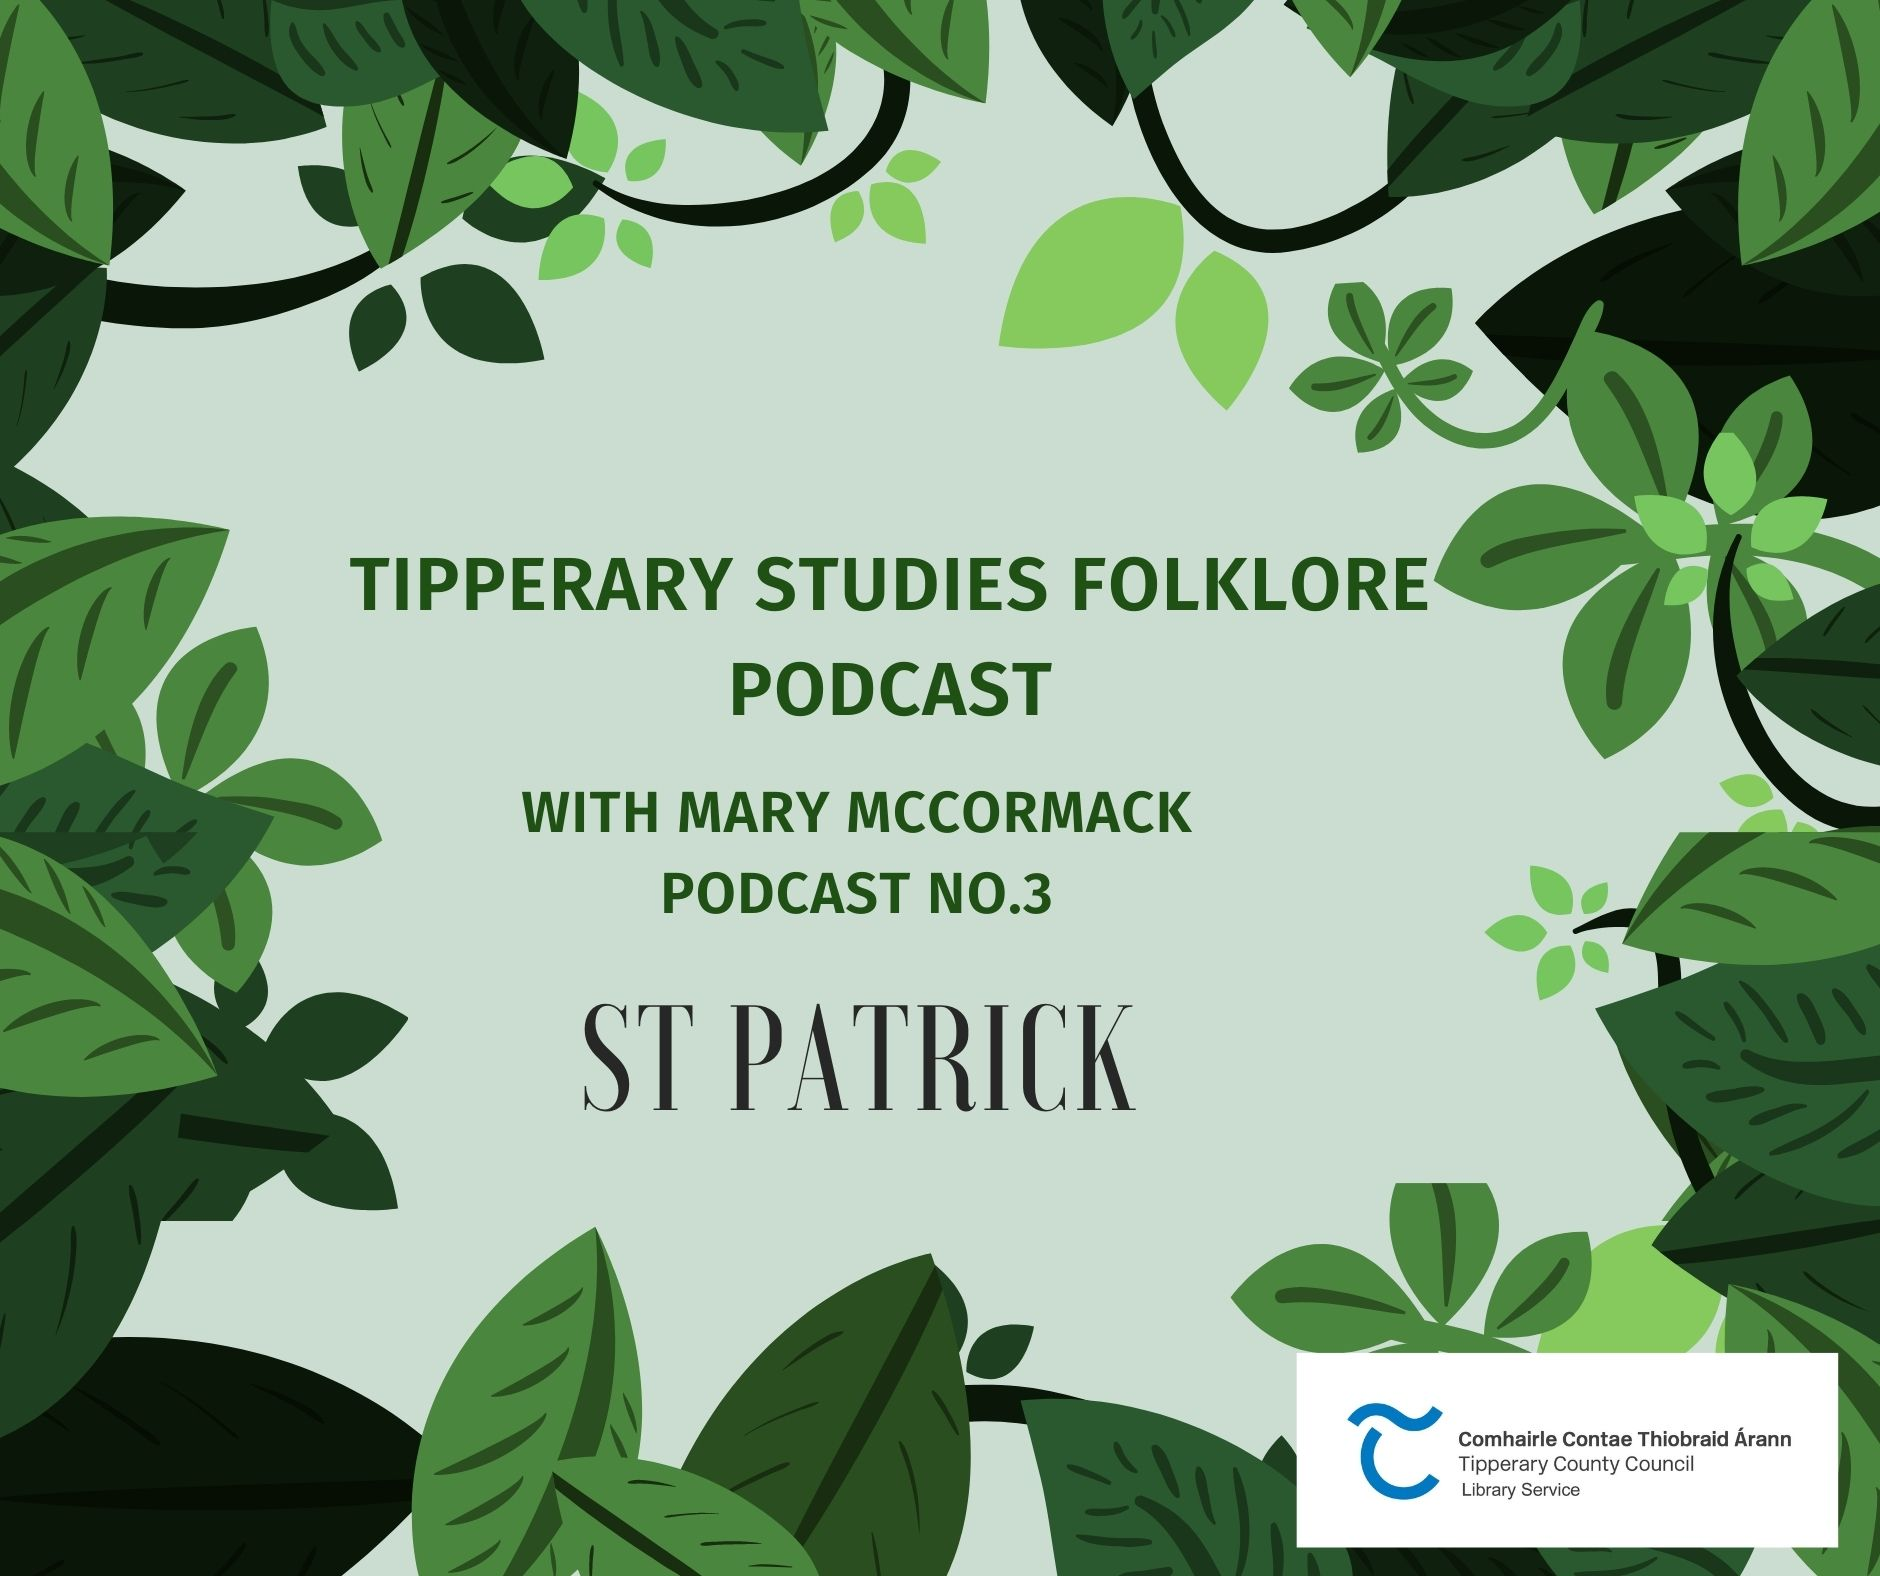 Folklore Podcast; St Patrick And Tipperary